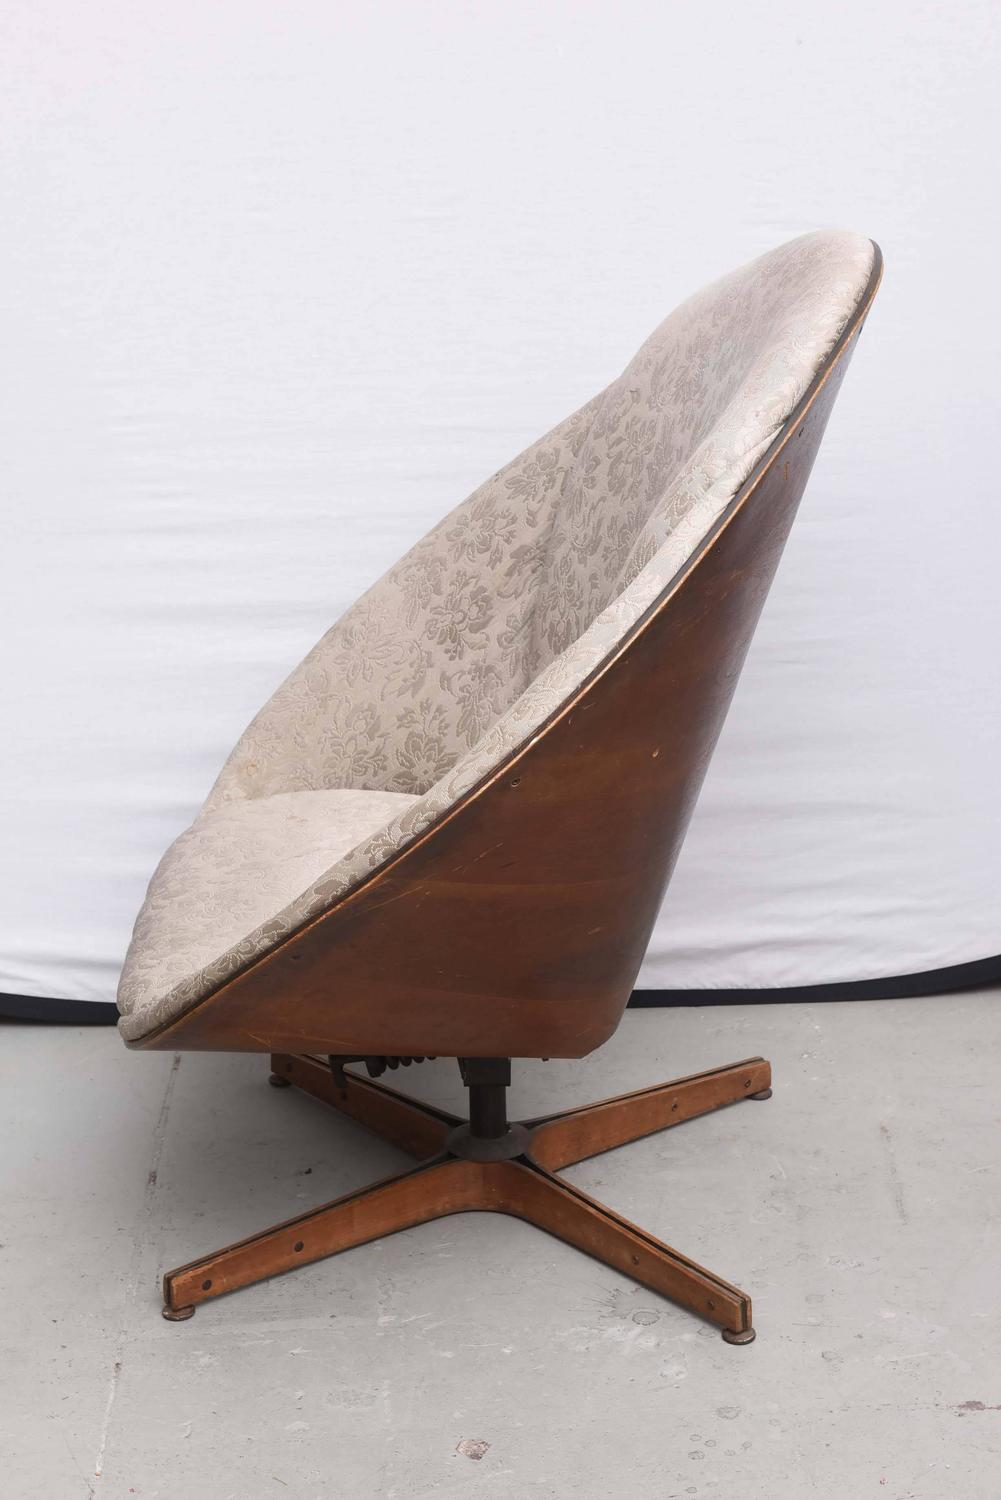 Rare Early Edition Plycraft Swivel Wooden Egg Chair 1950s